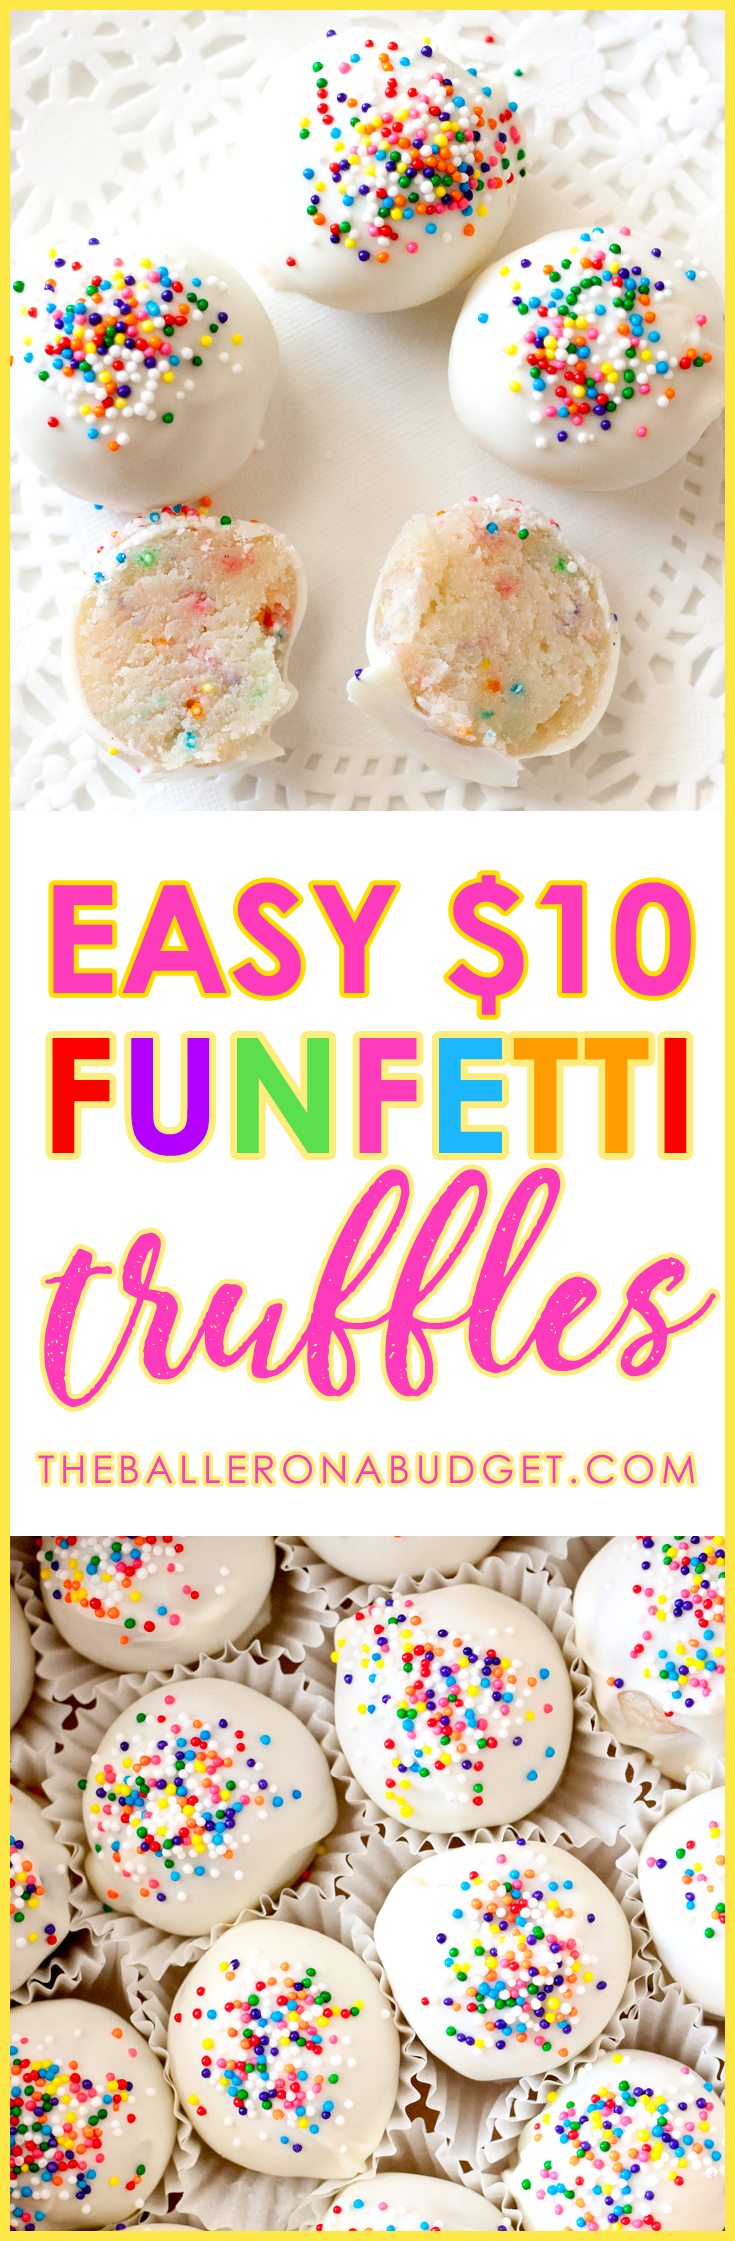 These quick and delicious Funfetti truffles cost less than $10 to make and are perfect for holiday feasts, Christmas gifts or Valentine's Day presents! - www.theballeronabudget.com